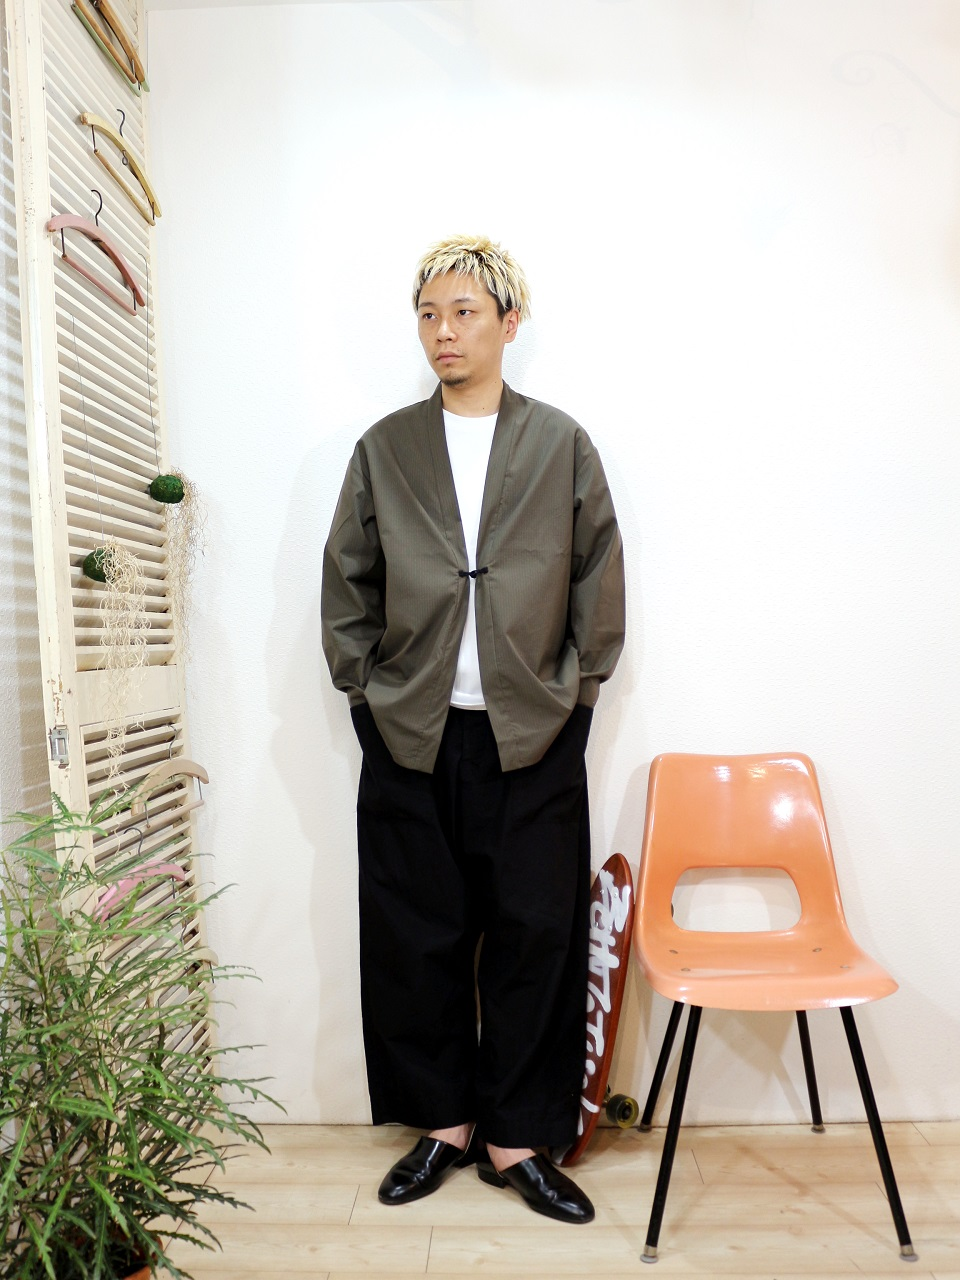 outer/Kelen-Dustin(SIZE 38)tee/modem design-10.2oz PLAIN S/S TEE(SIZE 2)pants/odorlesstasteless-WEATHER DUCK(SIZE 02)を使ったコーディネート